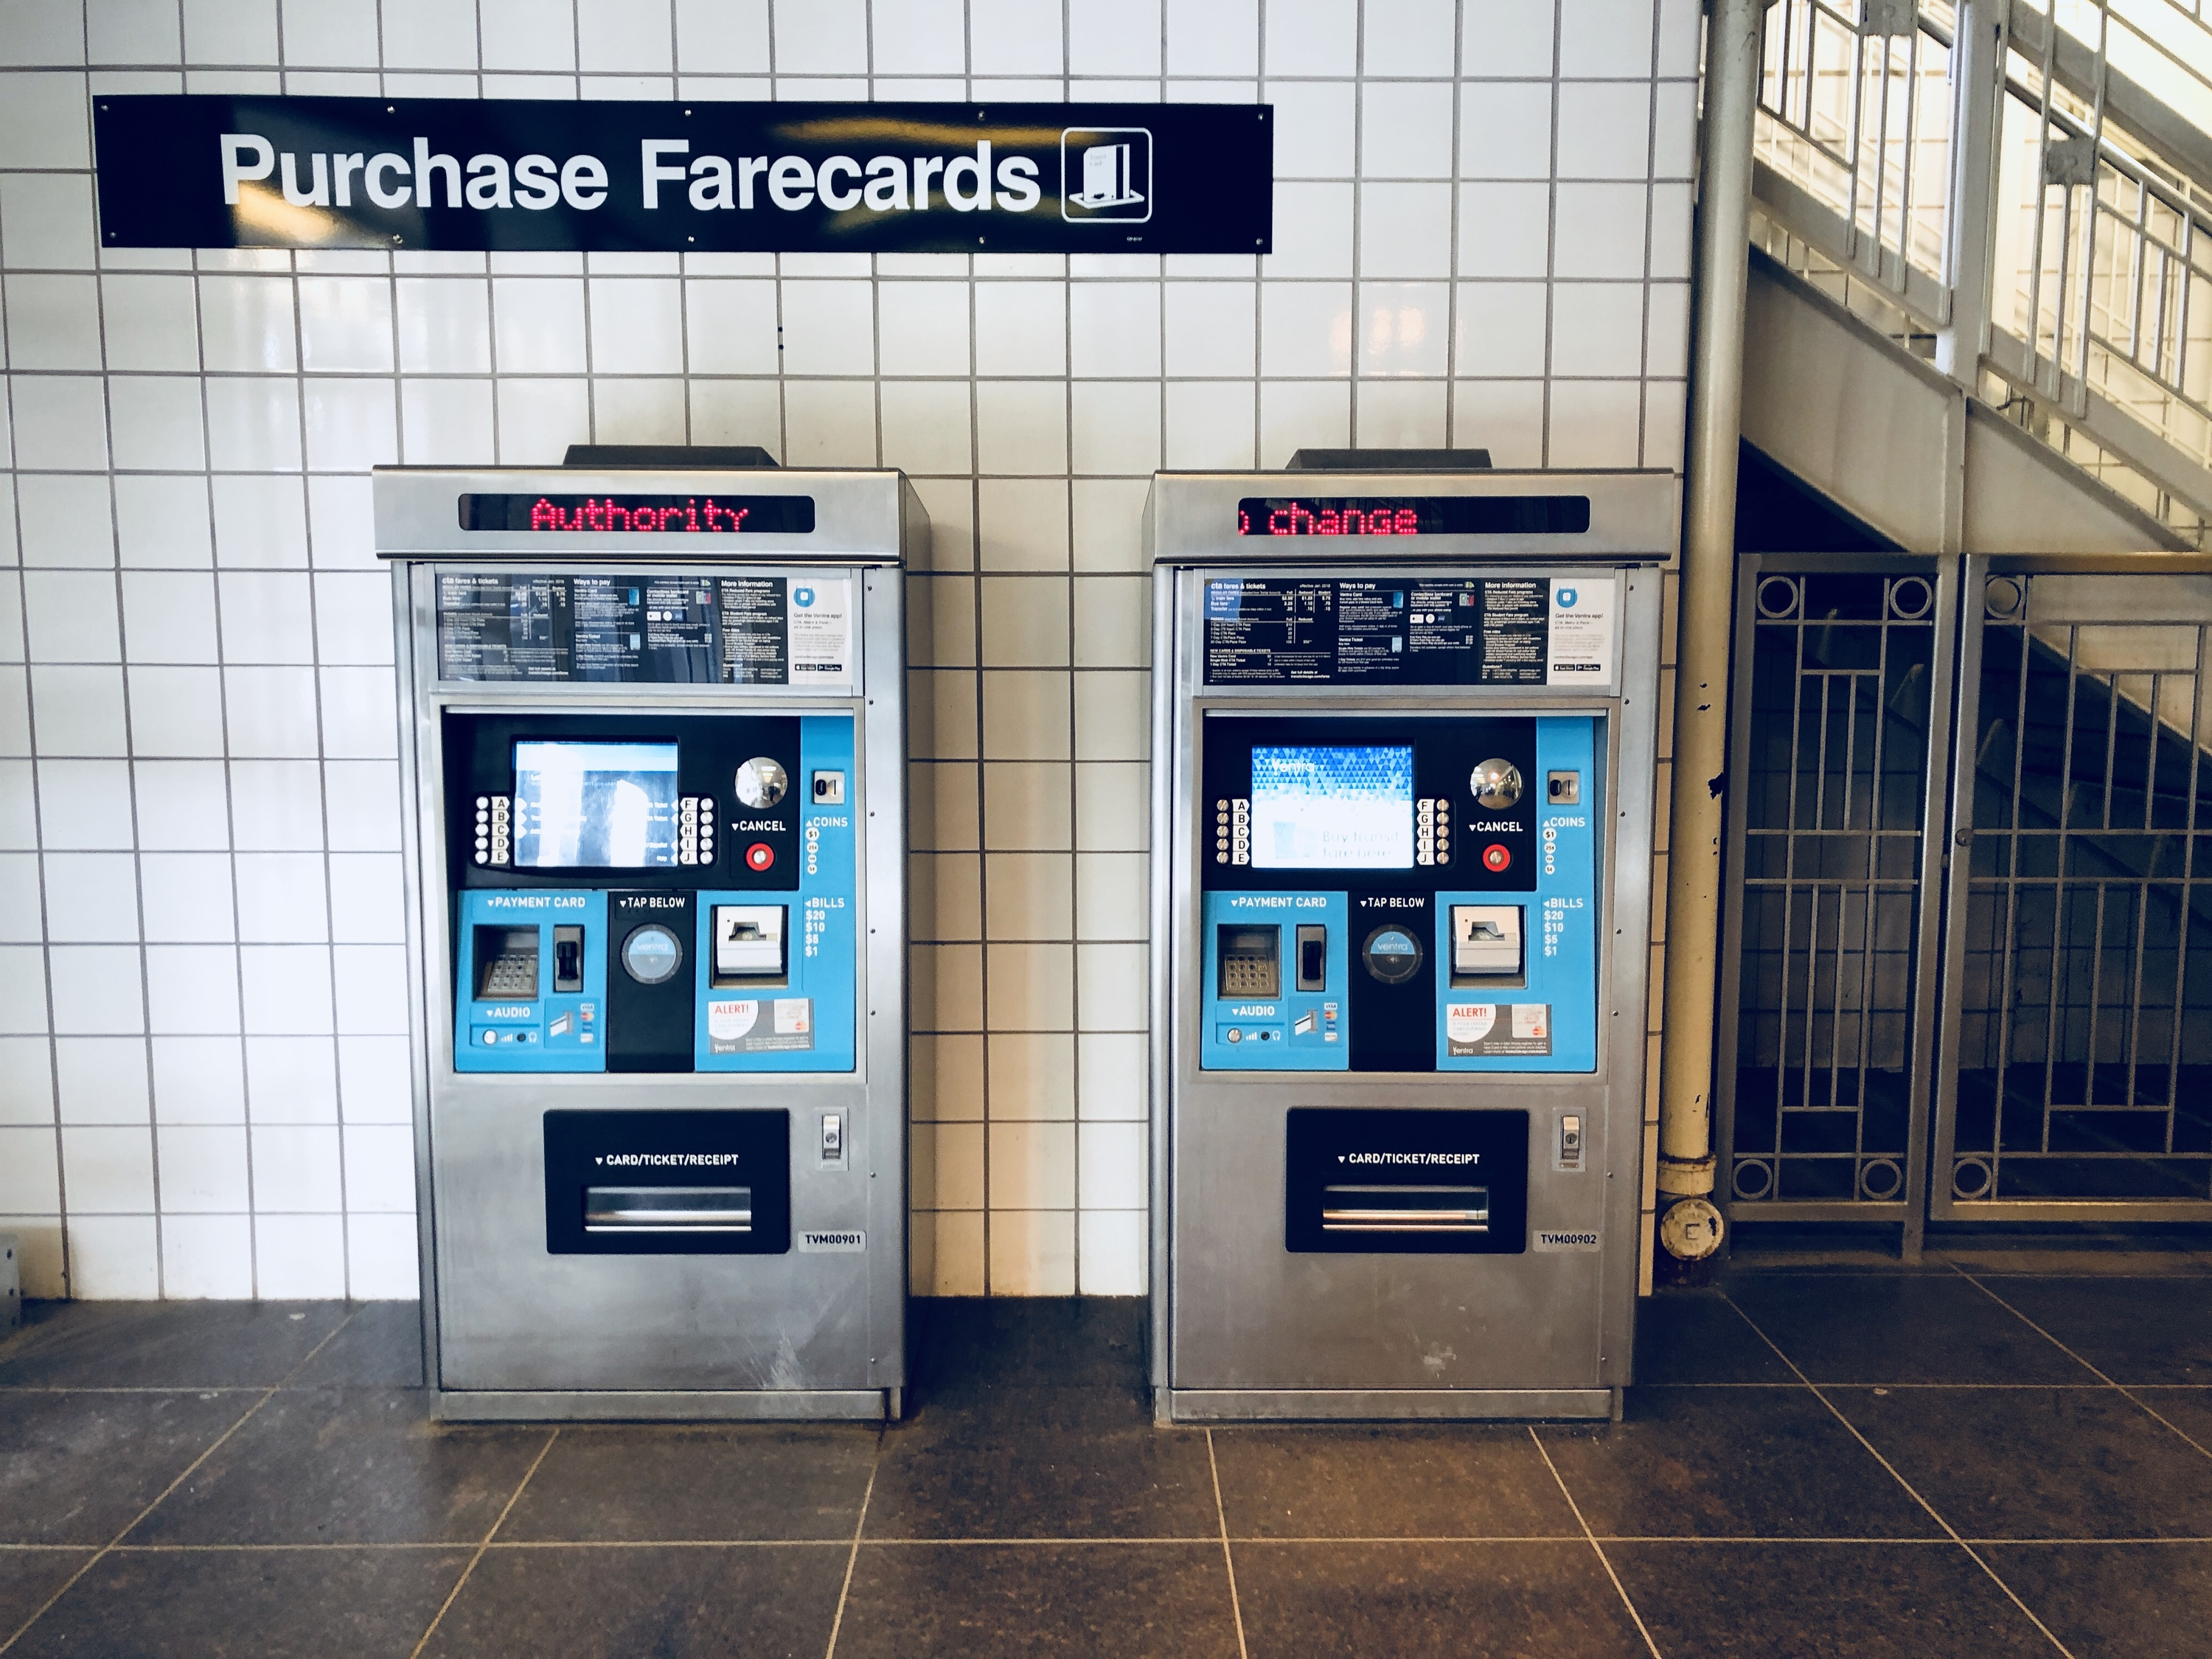 Ventra farecard machines at a CTA station